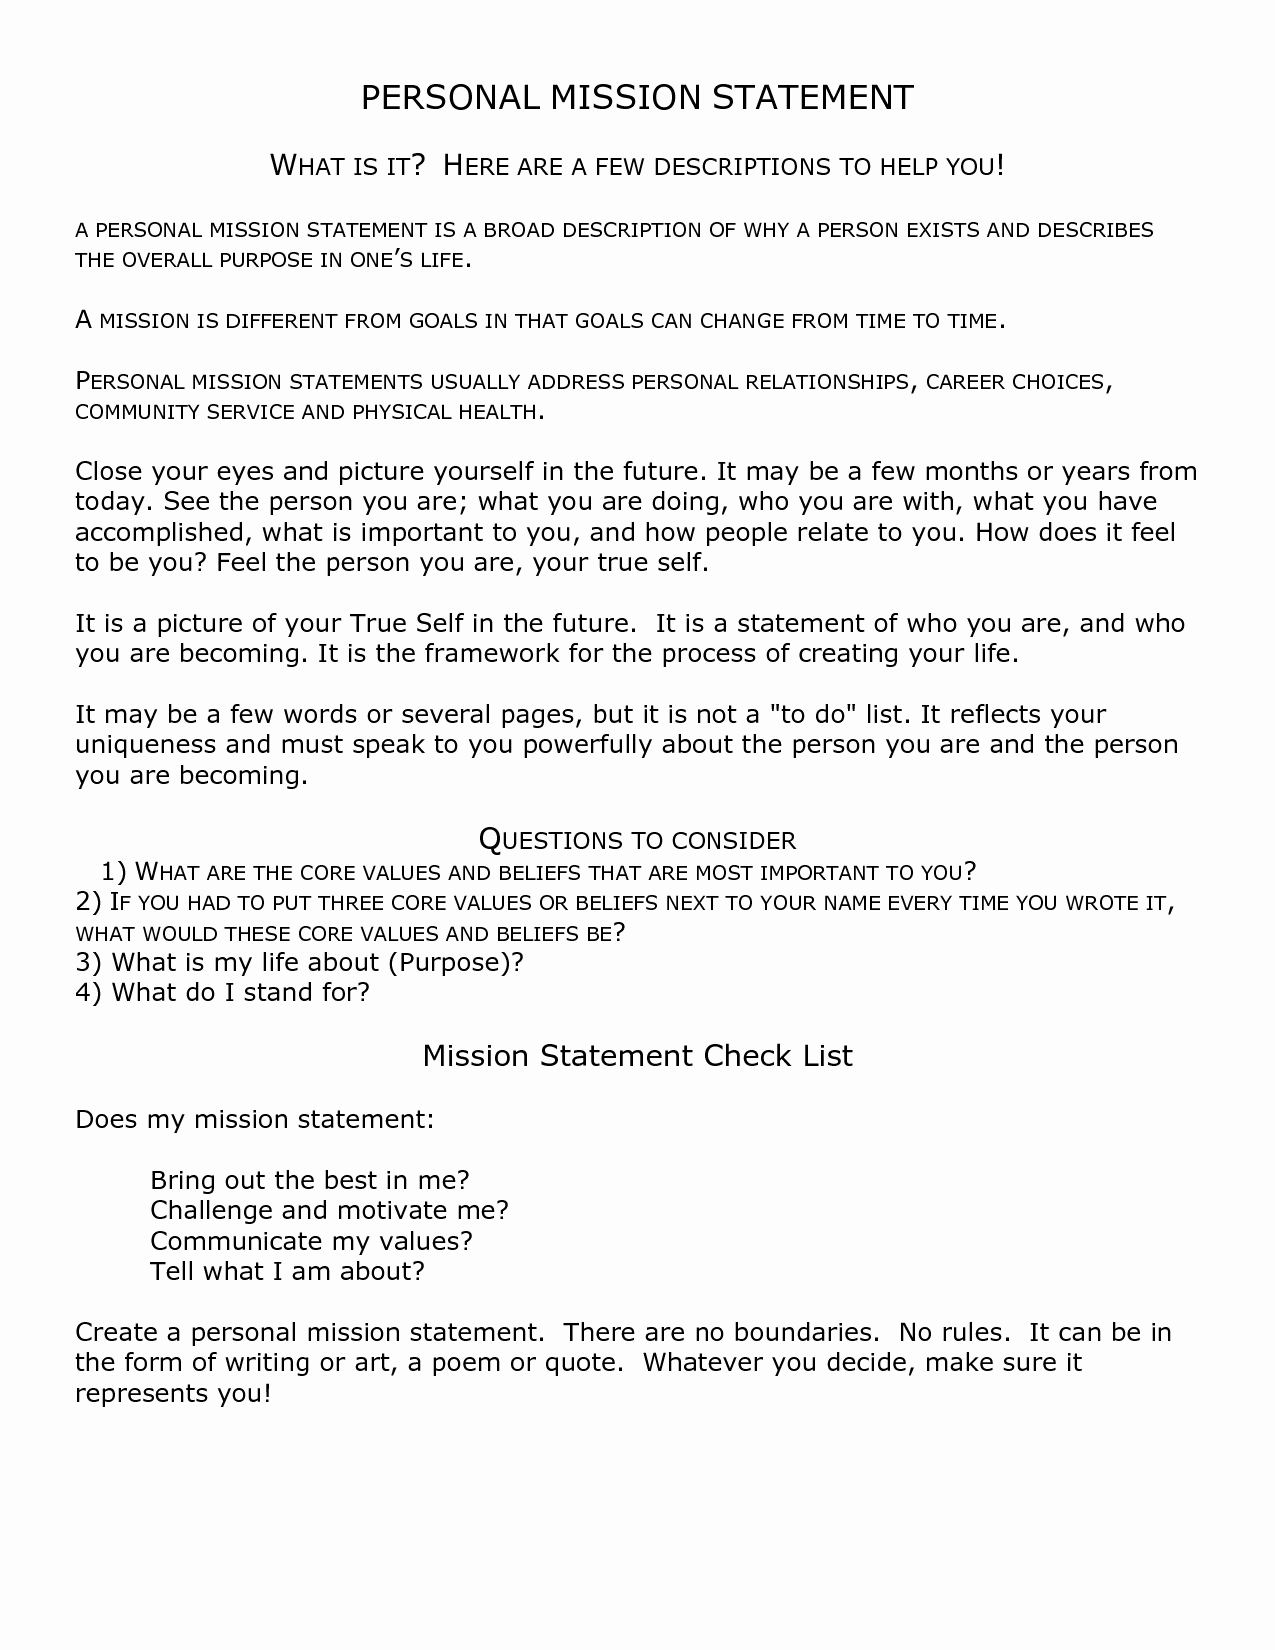 Personal Mission Statement Examples Inspirational Interior Design Mission Statement Examples Google Search